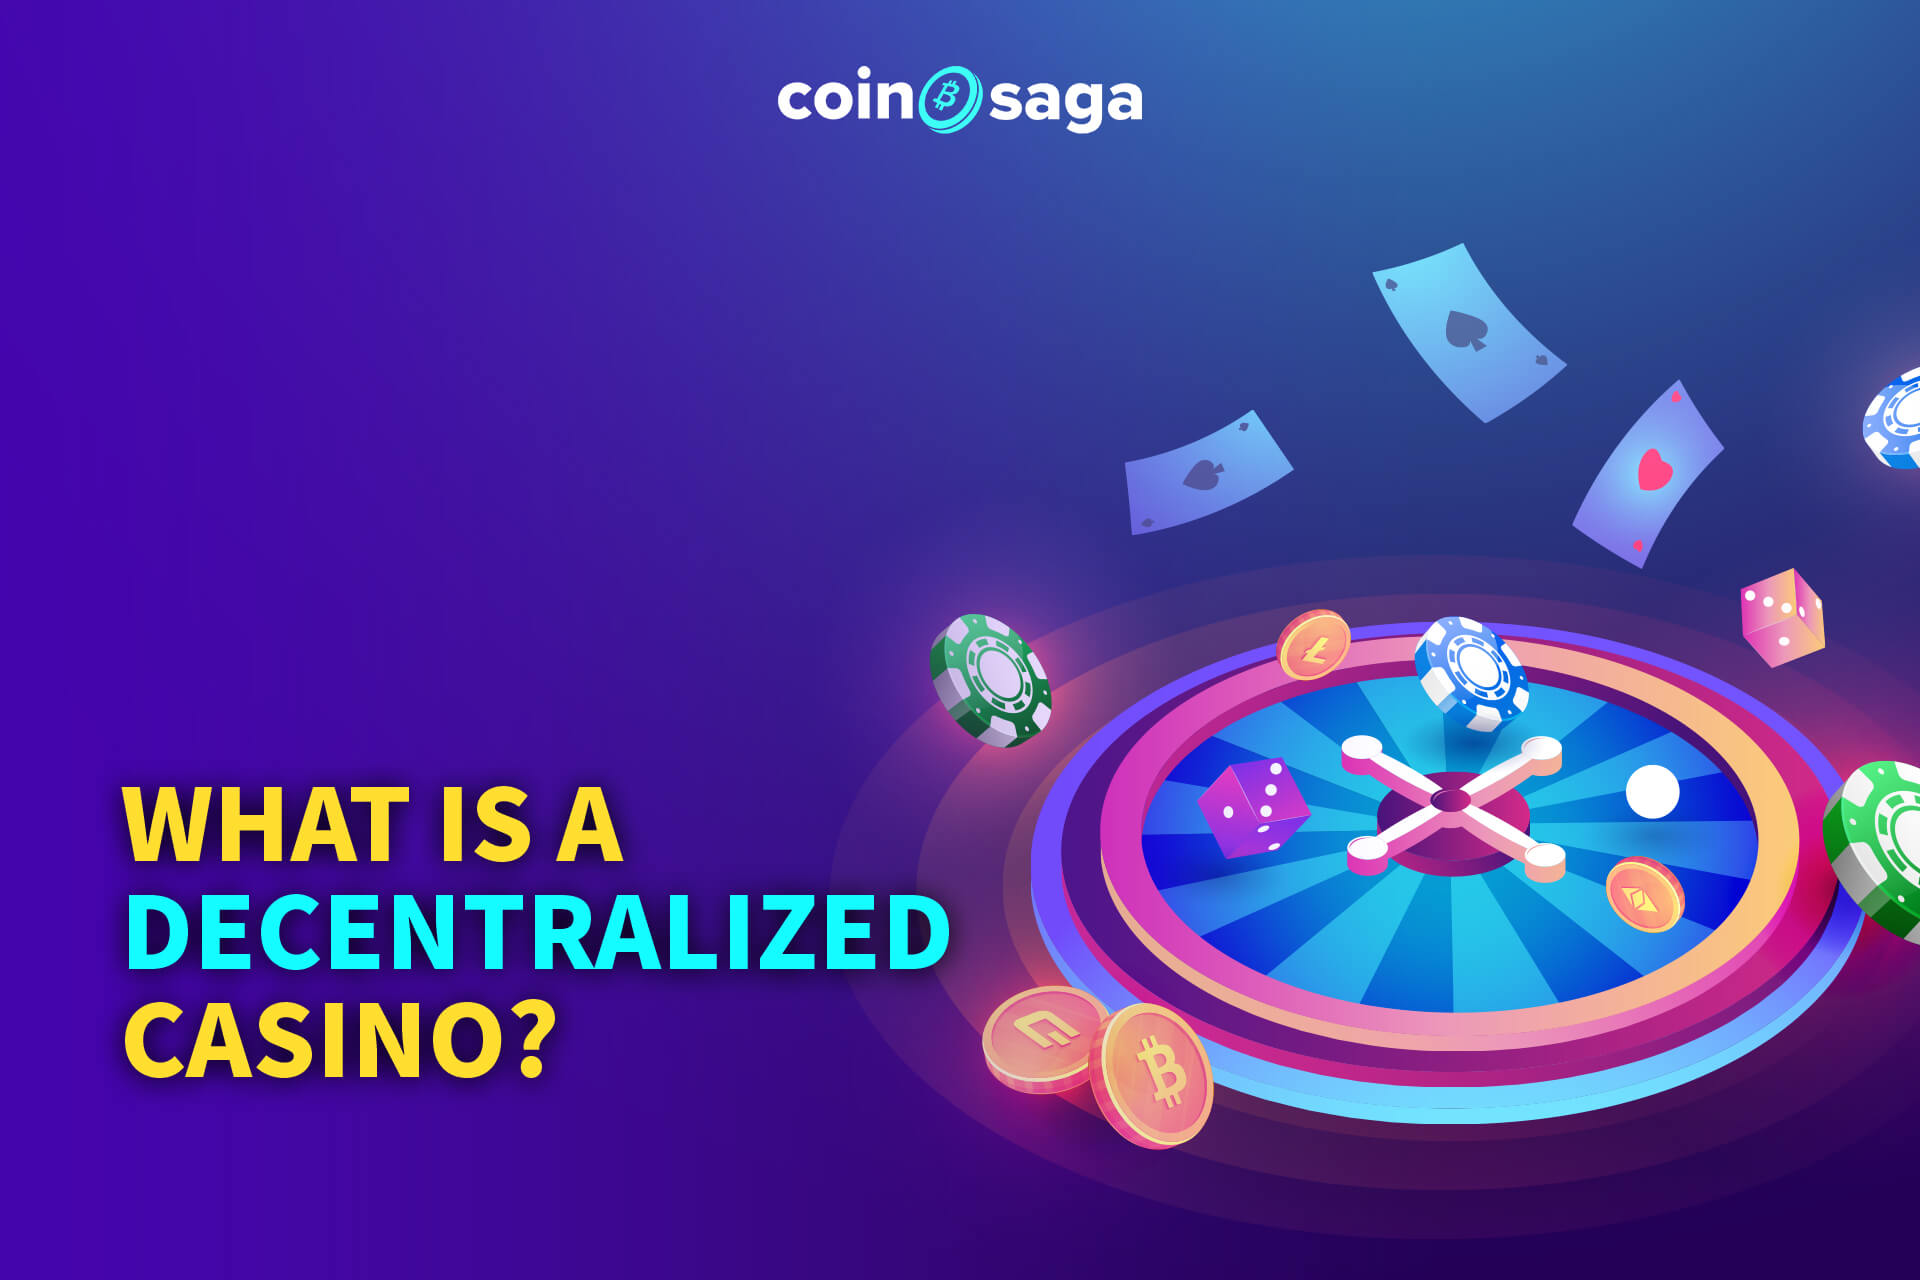 what is a decentralized casino